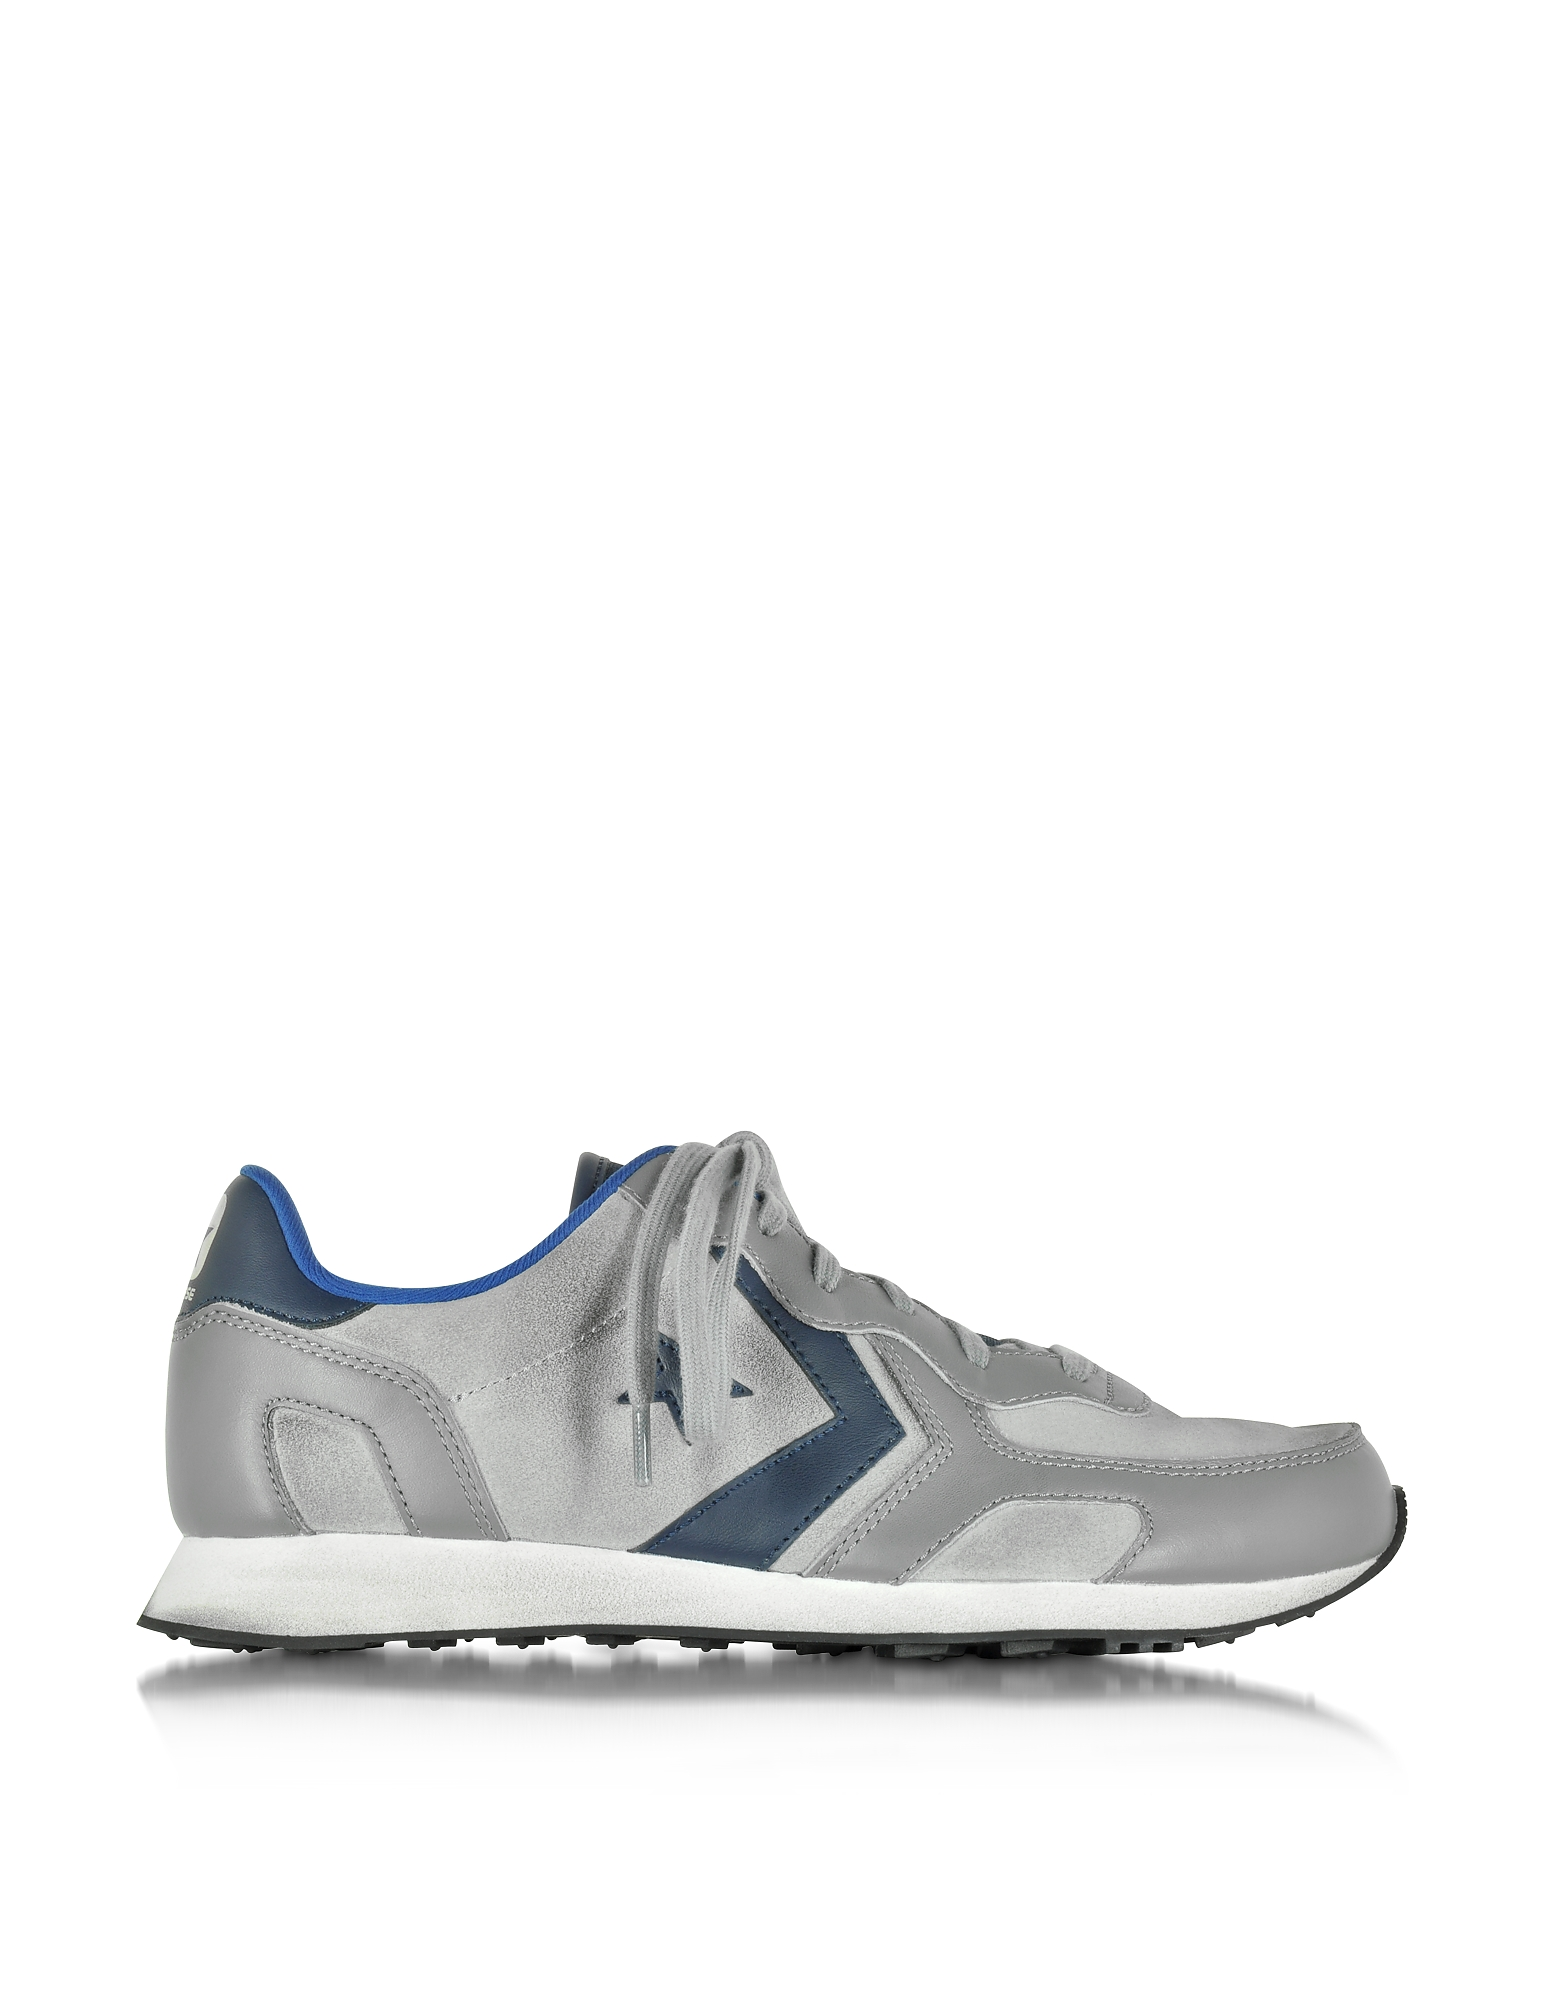 Converse Limited Edition Shoes, Auckland Racer Mason Blue Ox Suede Men's Sneaker